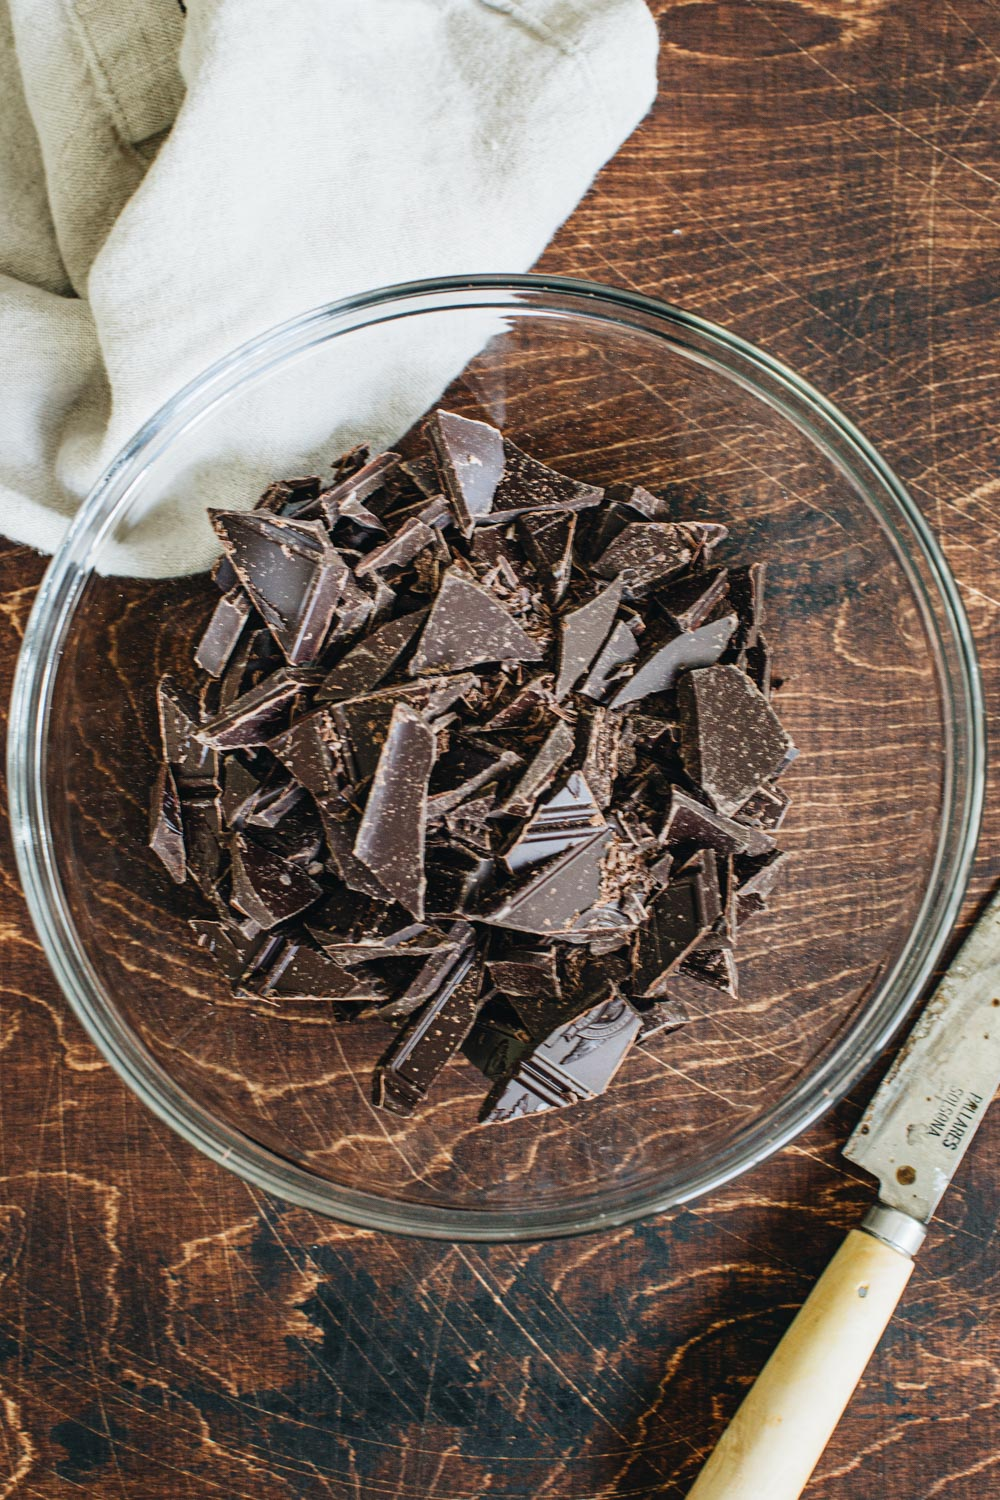 Chopped pieces of chocolate in a mixing bowl.